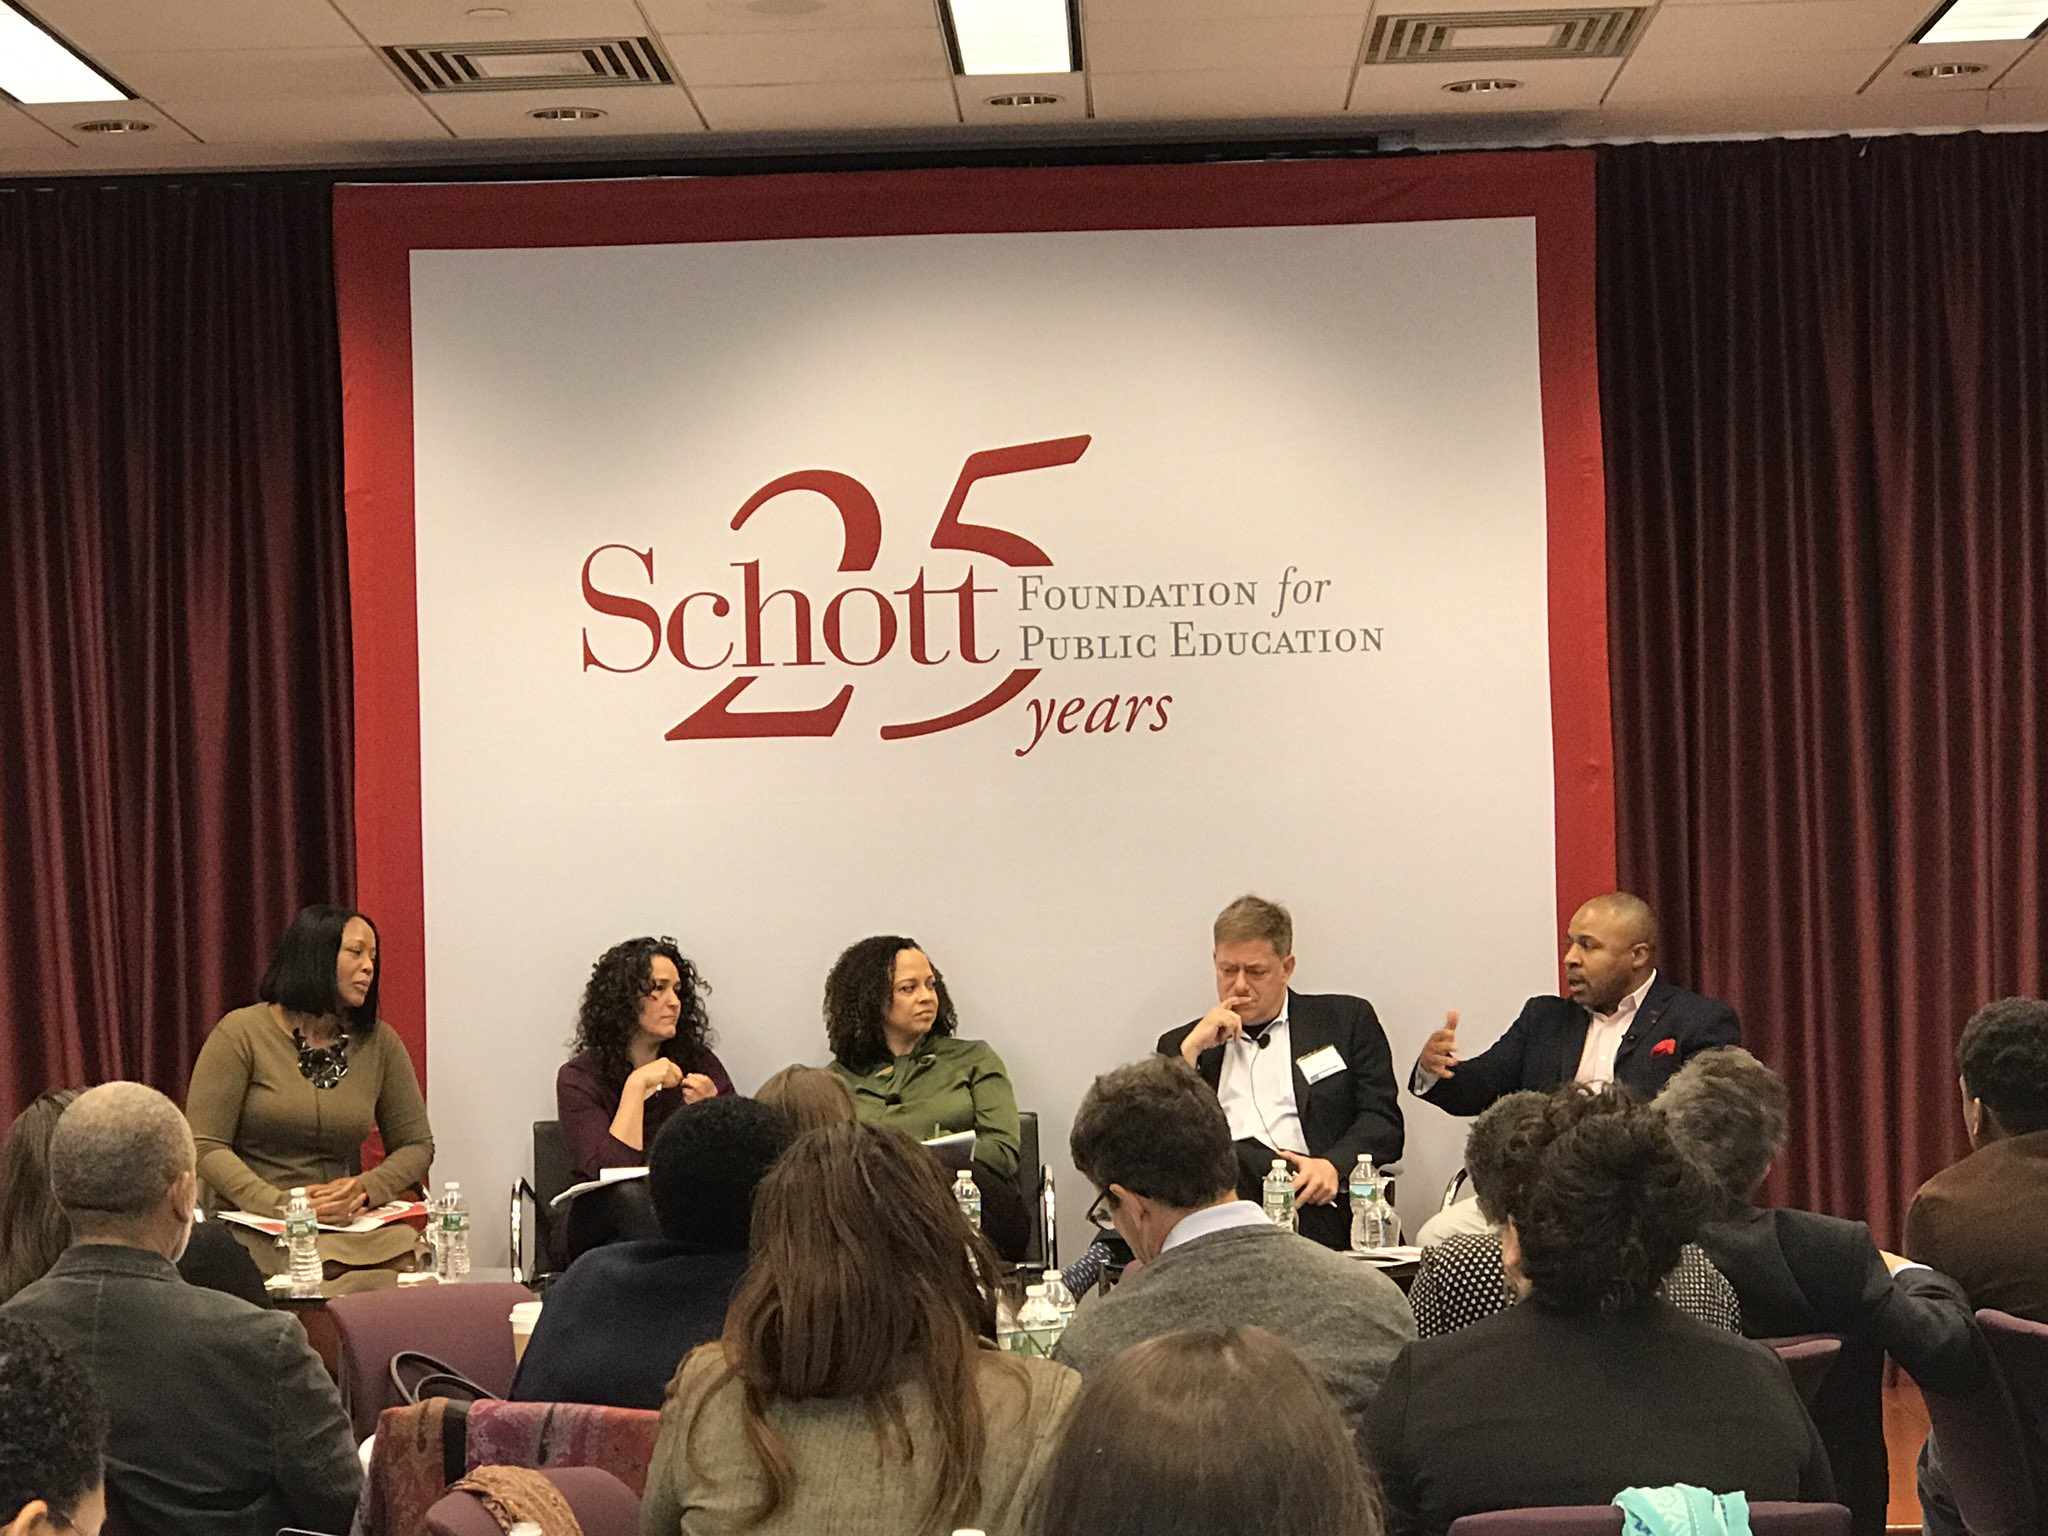 John Jackson: We not need only need to use our cash, but our cache to help organizations win. #Schott25 https://t.co/sjMdgJgscP